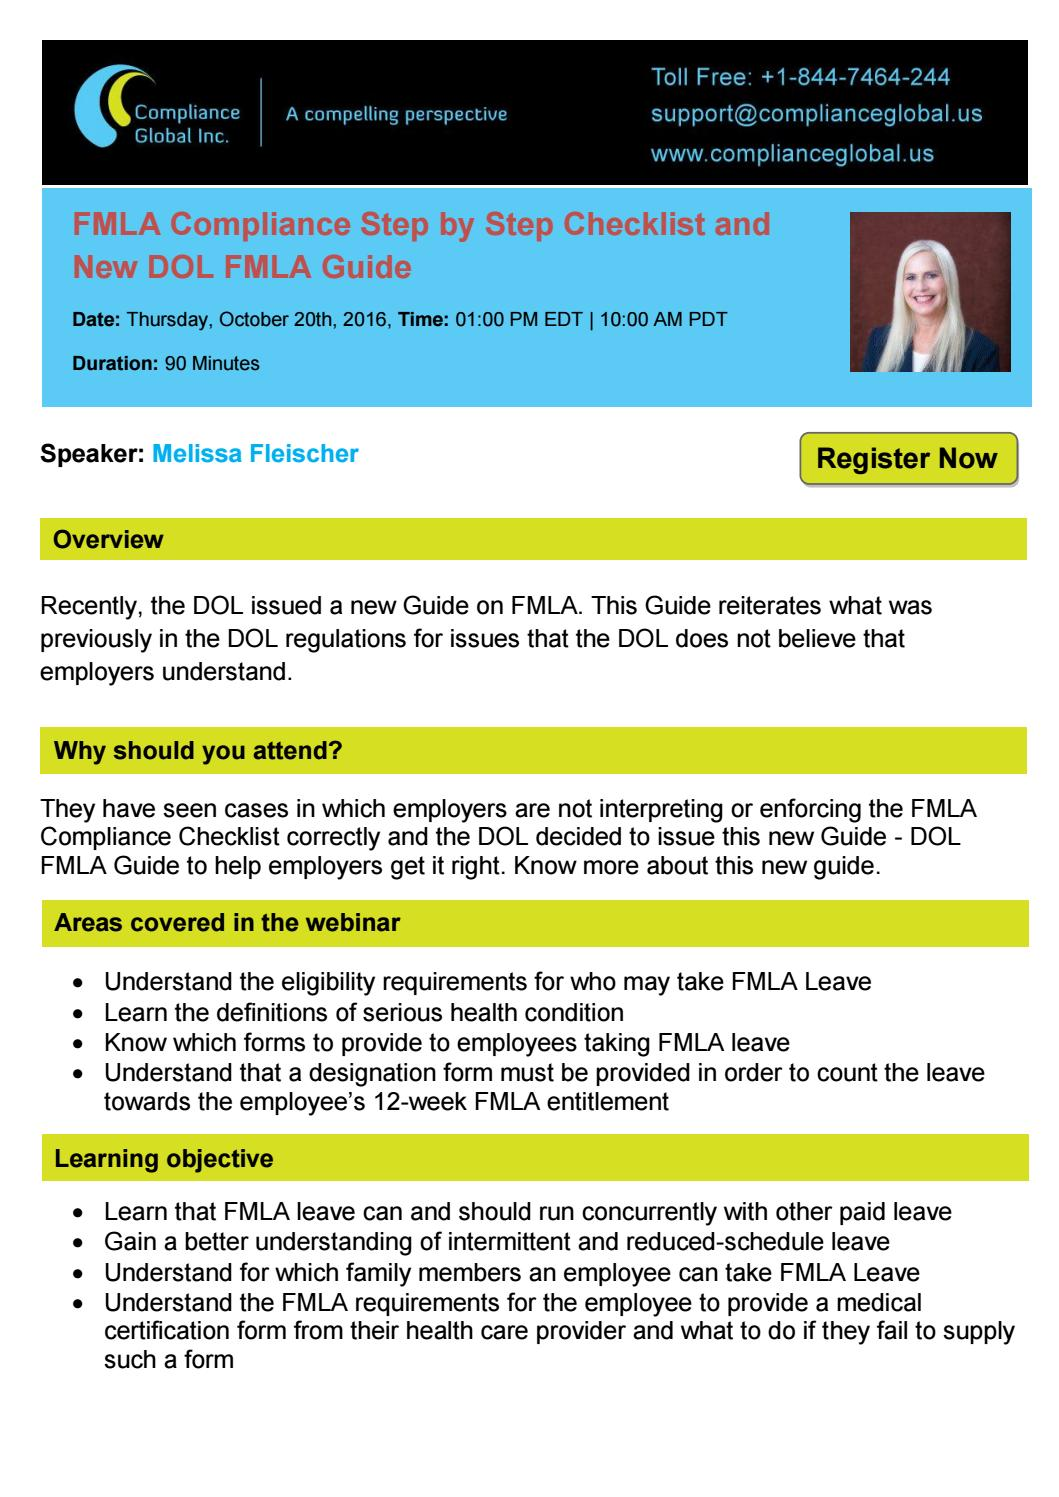 Fmla compliance step by step checklist and new dol fmla guide by fmla compliance step by step checklist and new dol fmla guide by compliance global inc by compliance global inc issuu falaconquin